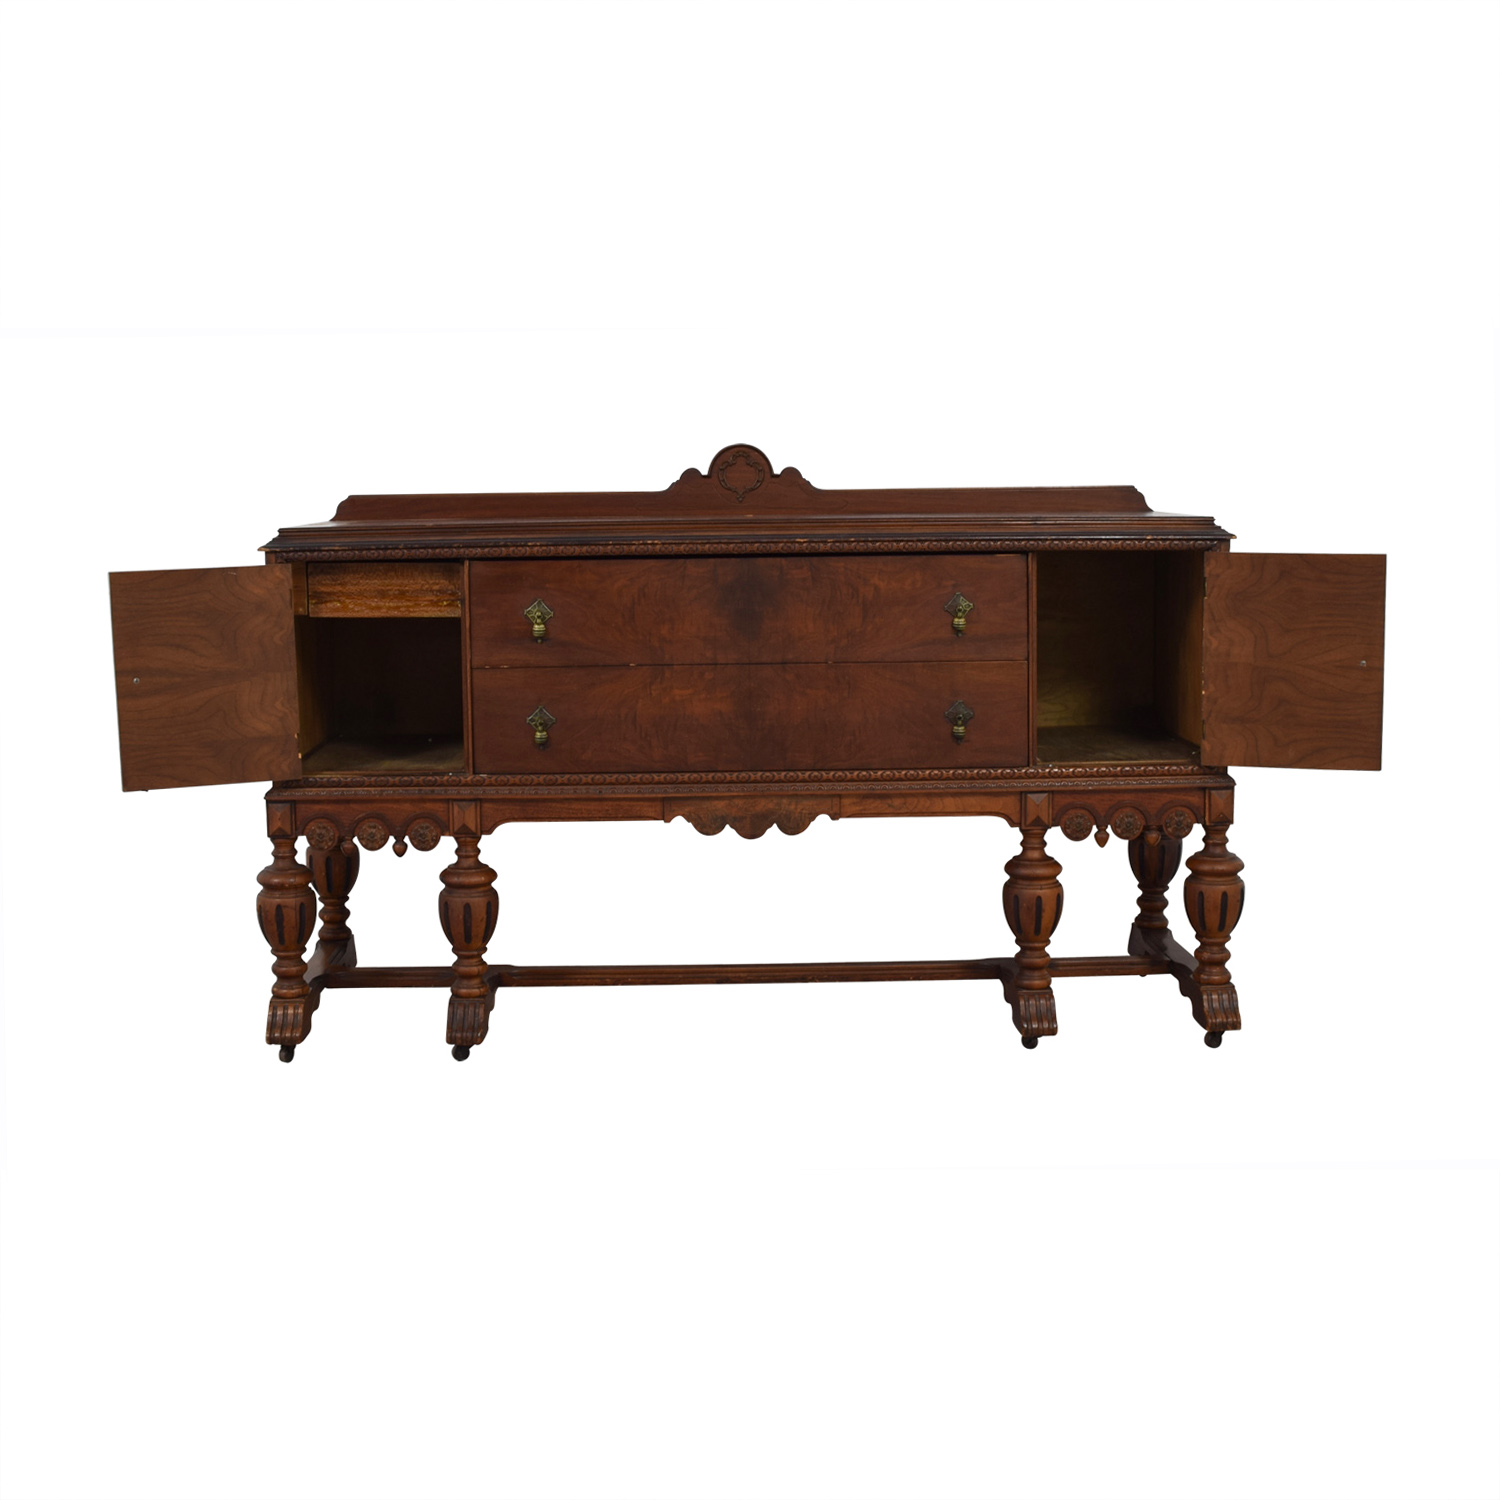 Antique Two-Drawer Wood Buffet Sideboard / Cabinets & Sideboards